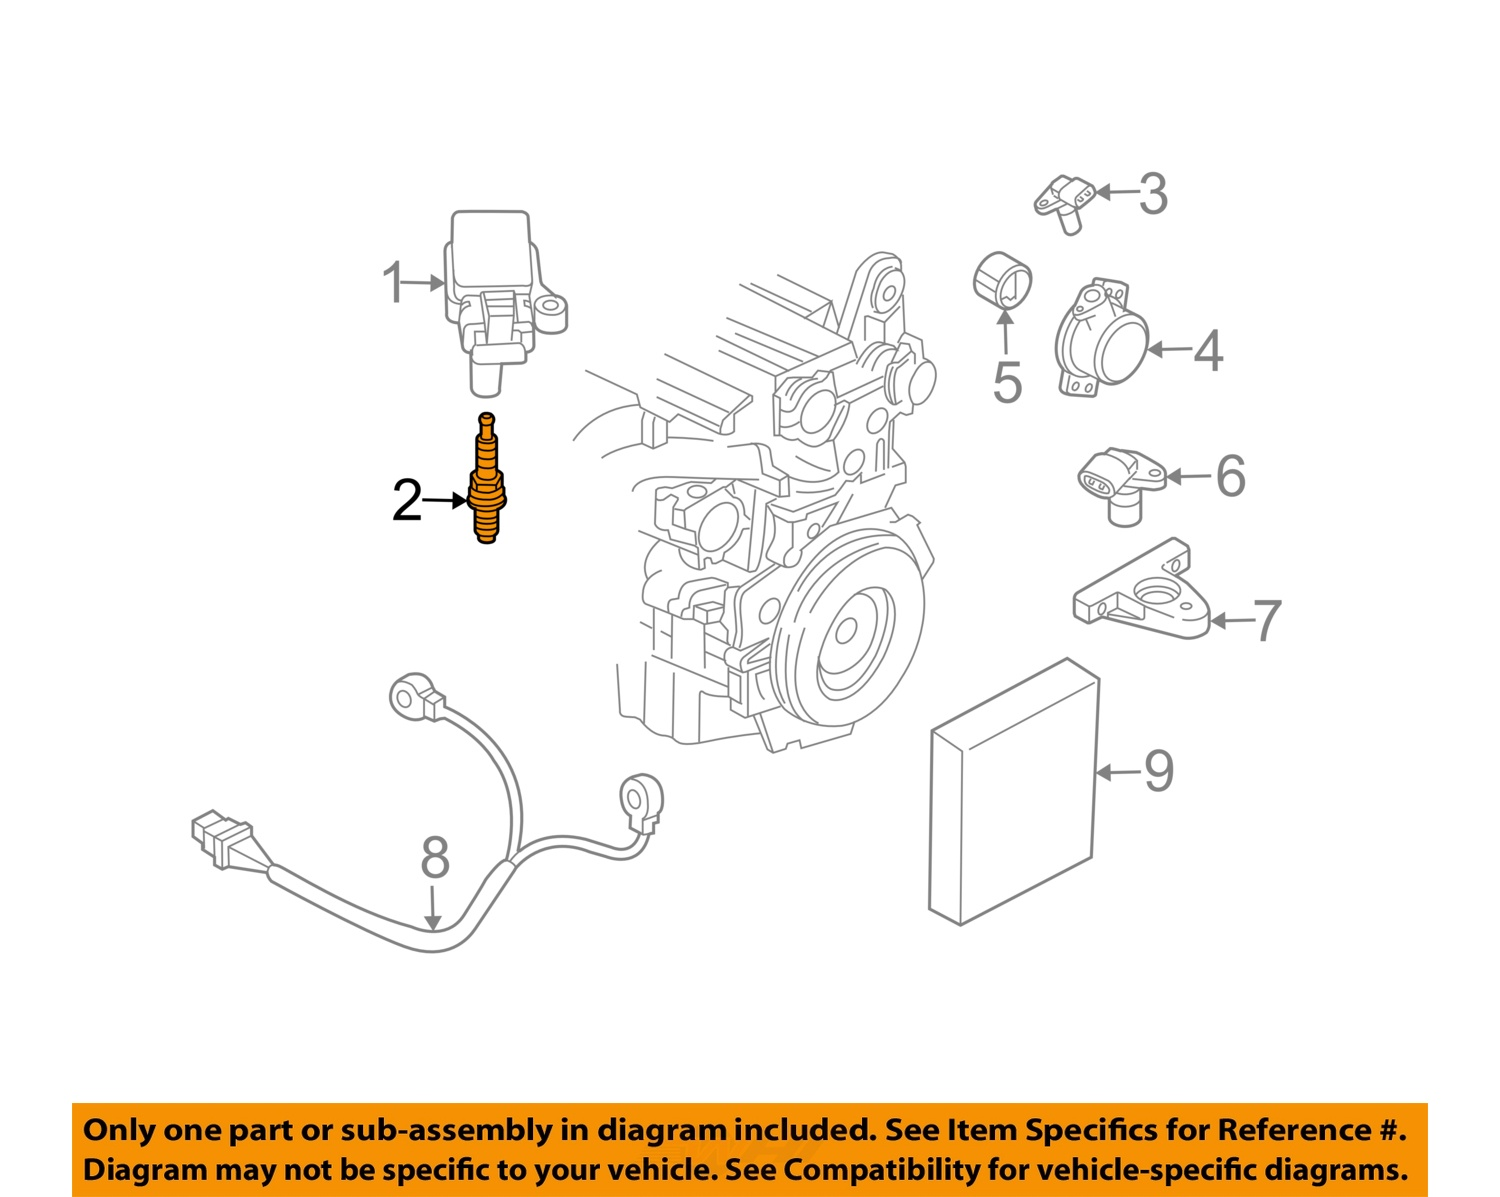 xc l engine diagram xc wiring diagrams cars description volvo oem 03 06 xc90 2 5l l5 ignition spark plug 8692071 description volvo xc t engine diagram ignition